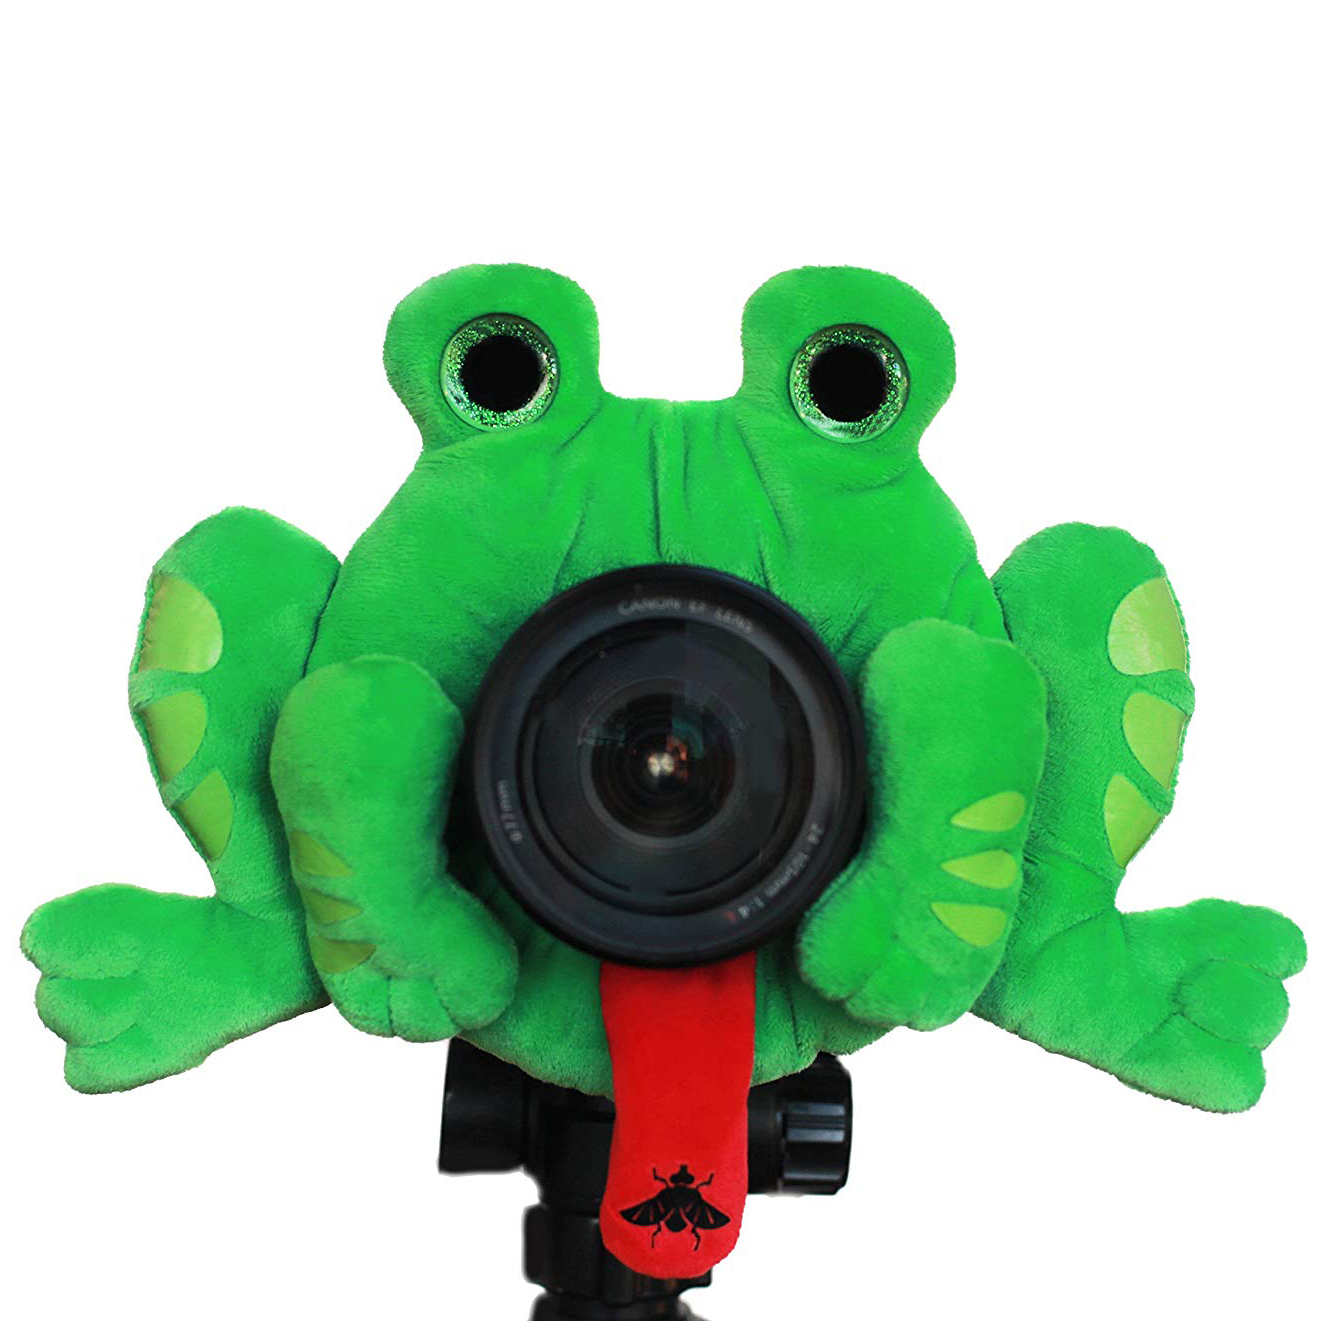 camera-creature-frog-lens-toy